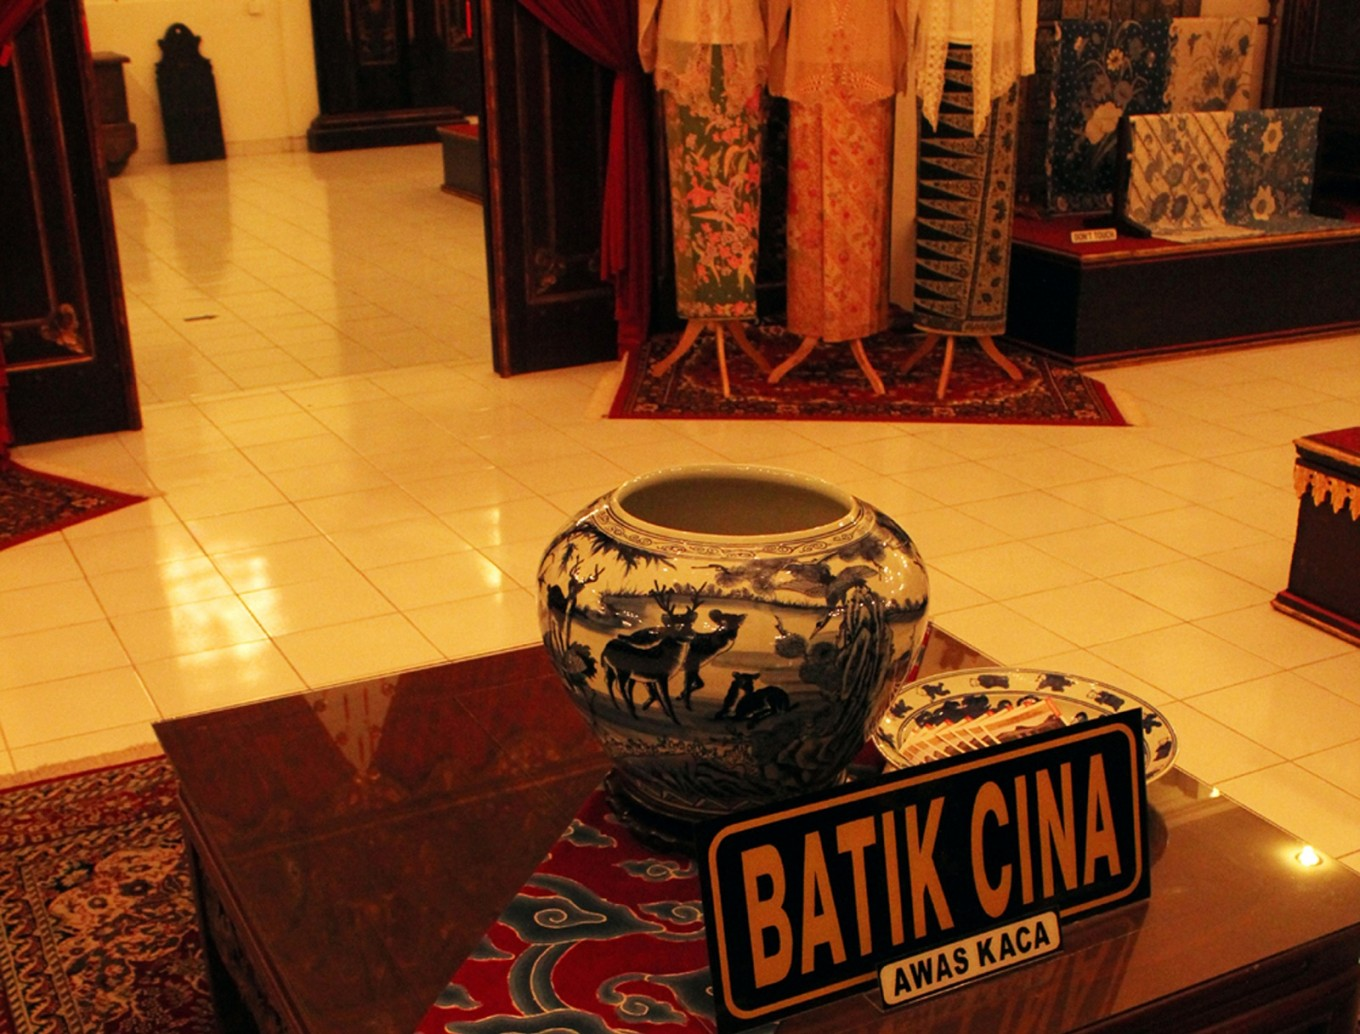 Visitors can also marvel at the collection of Batik Cina at the museum.